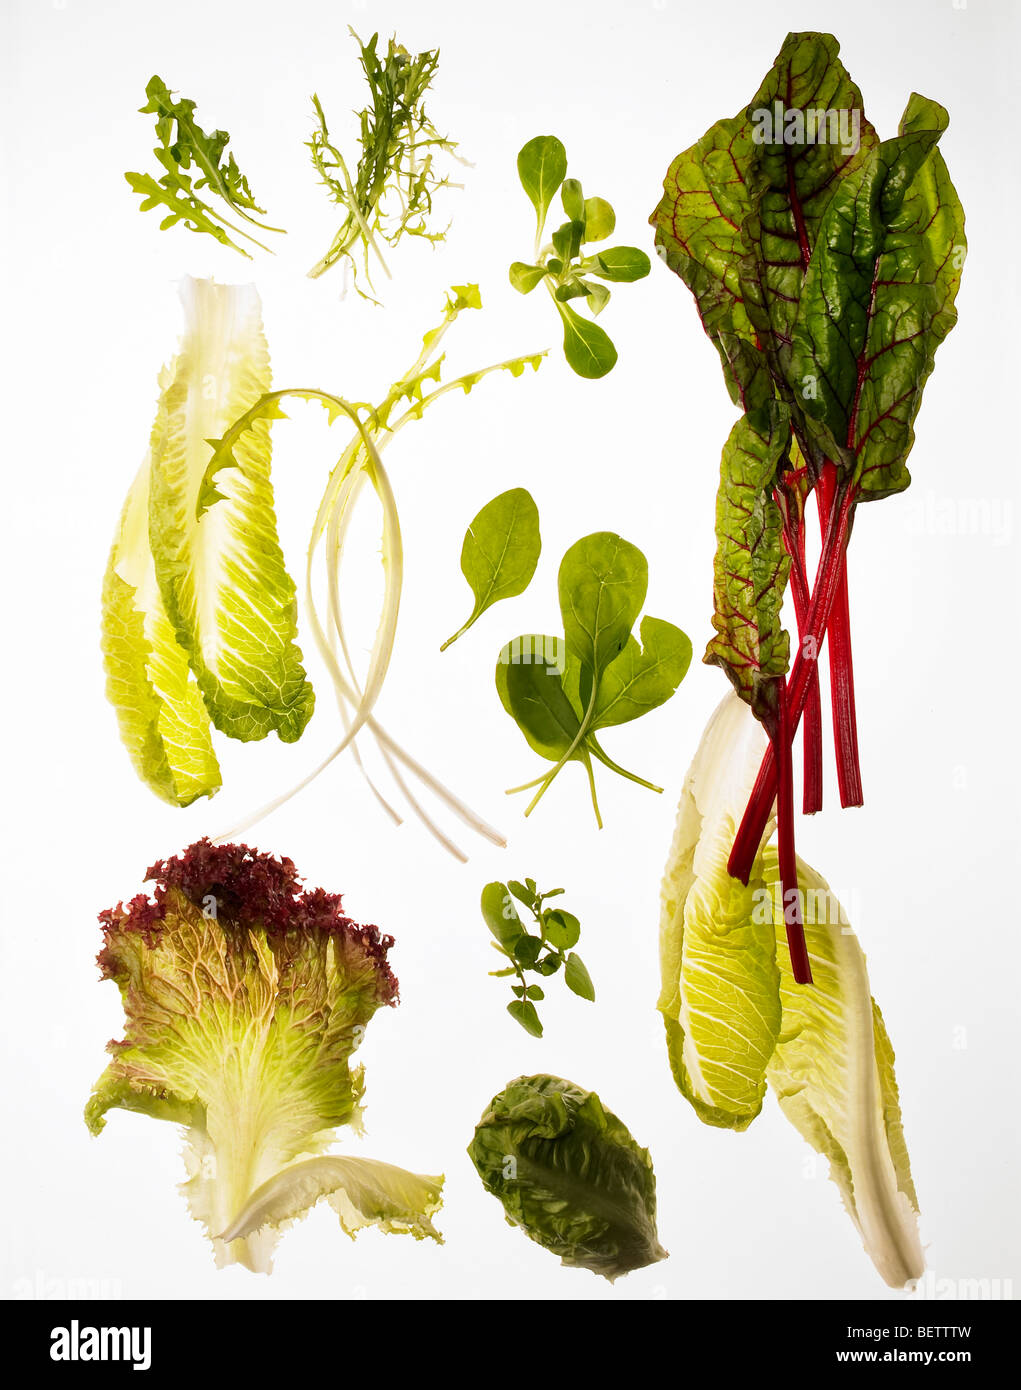 Ingredienti per insalata, diverse foglie verdi adatto per insalate. Foto Stock